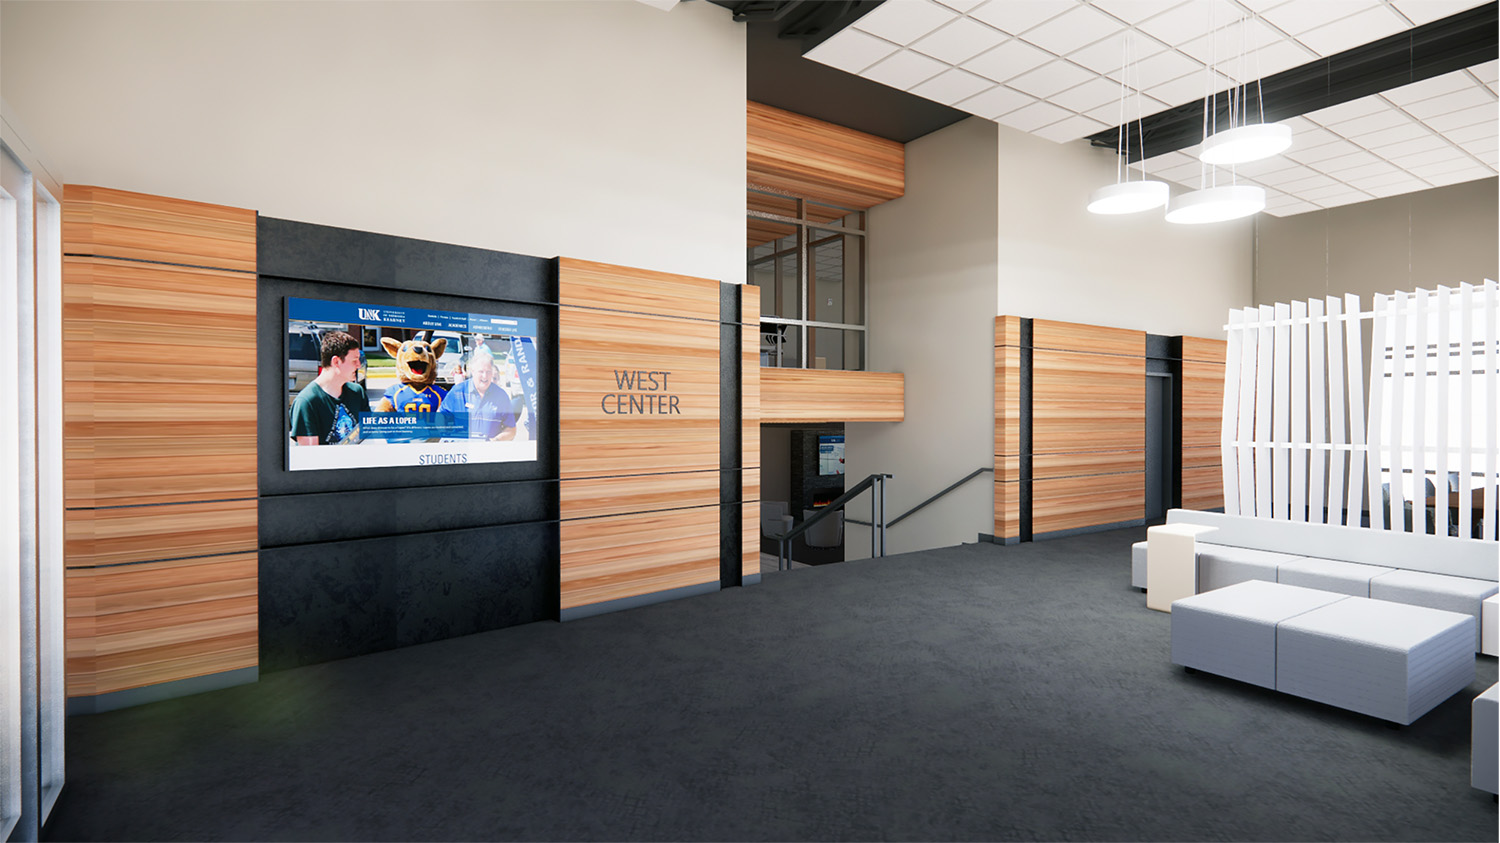 The West Center remodeling project will transform the east entrance into a modern lobby.